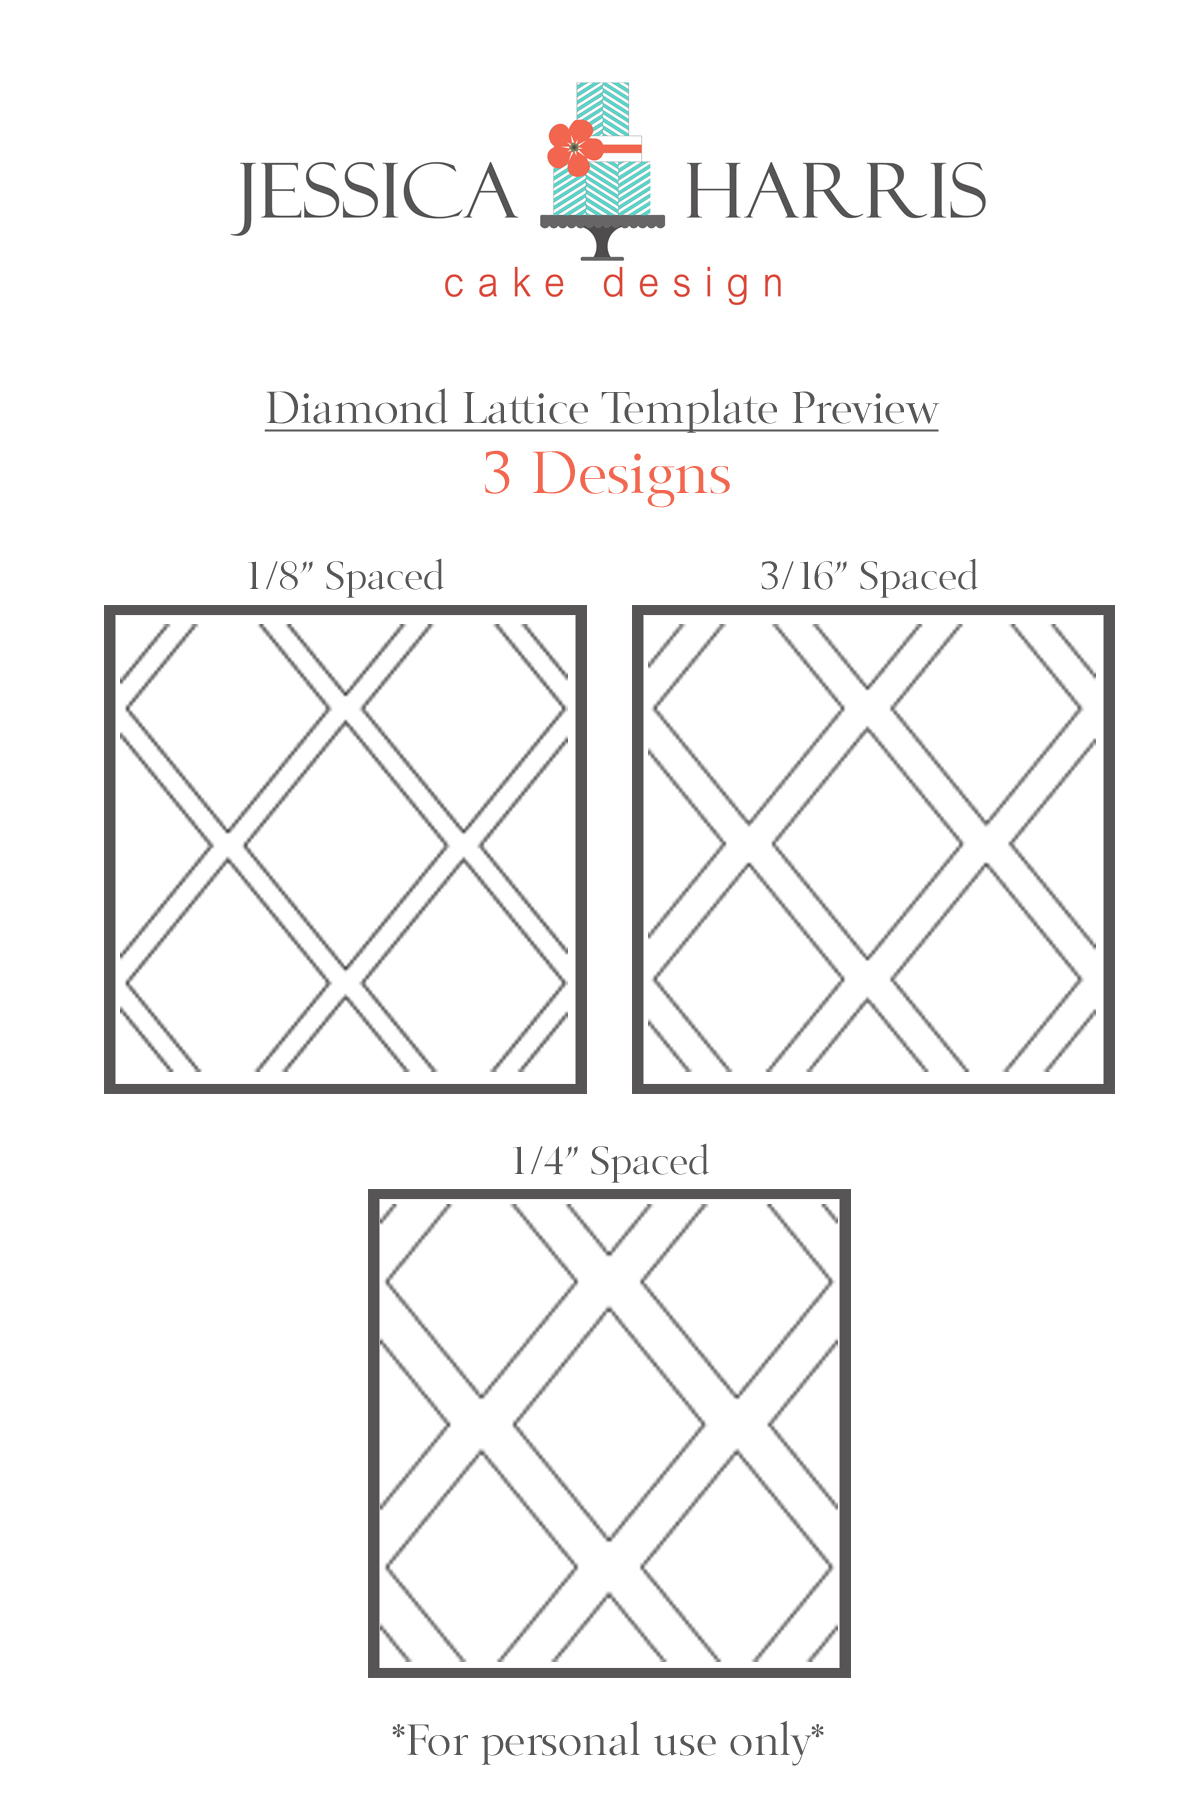 class size reduction templates